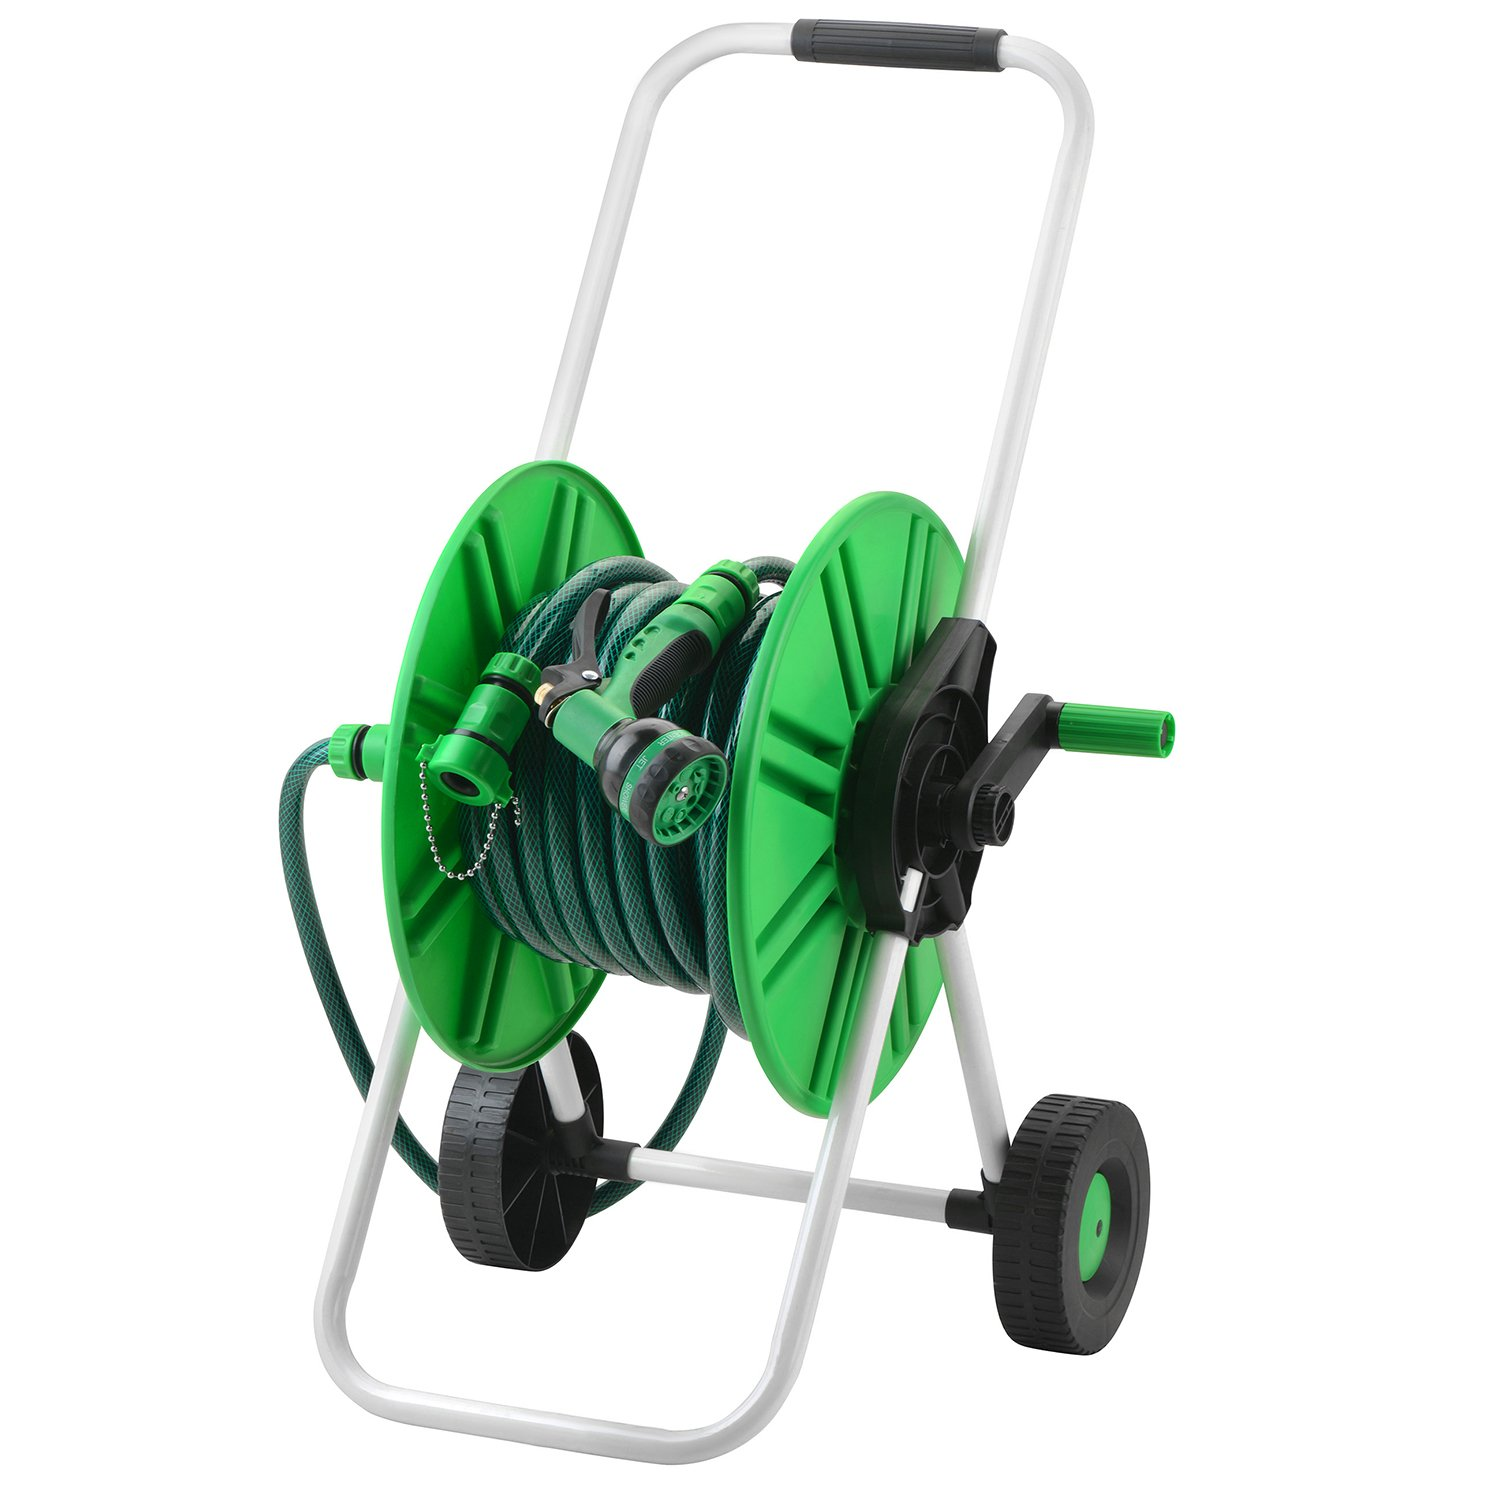 M PLUS Garden Hose Reel Cart with 65 feet | 5/8 Inch Hose And Quick Connecting Trolley Set